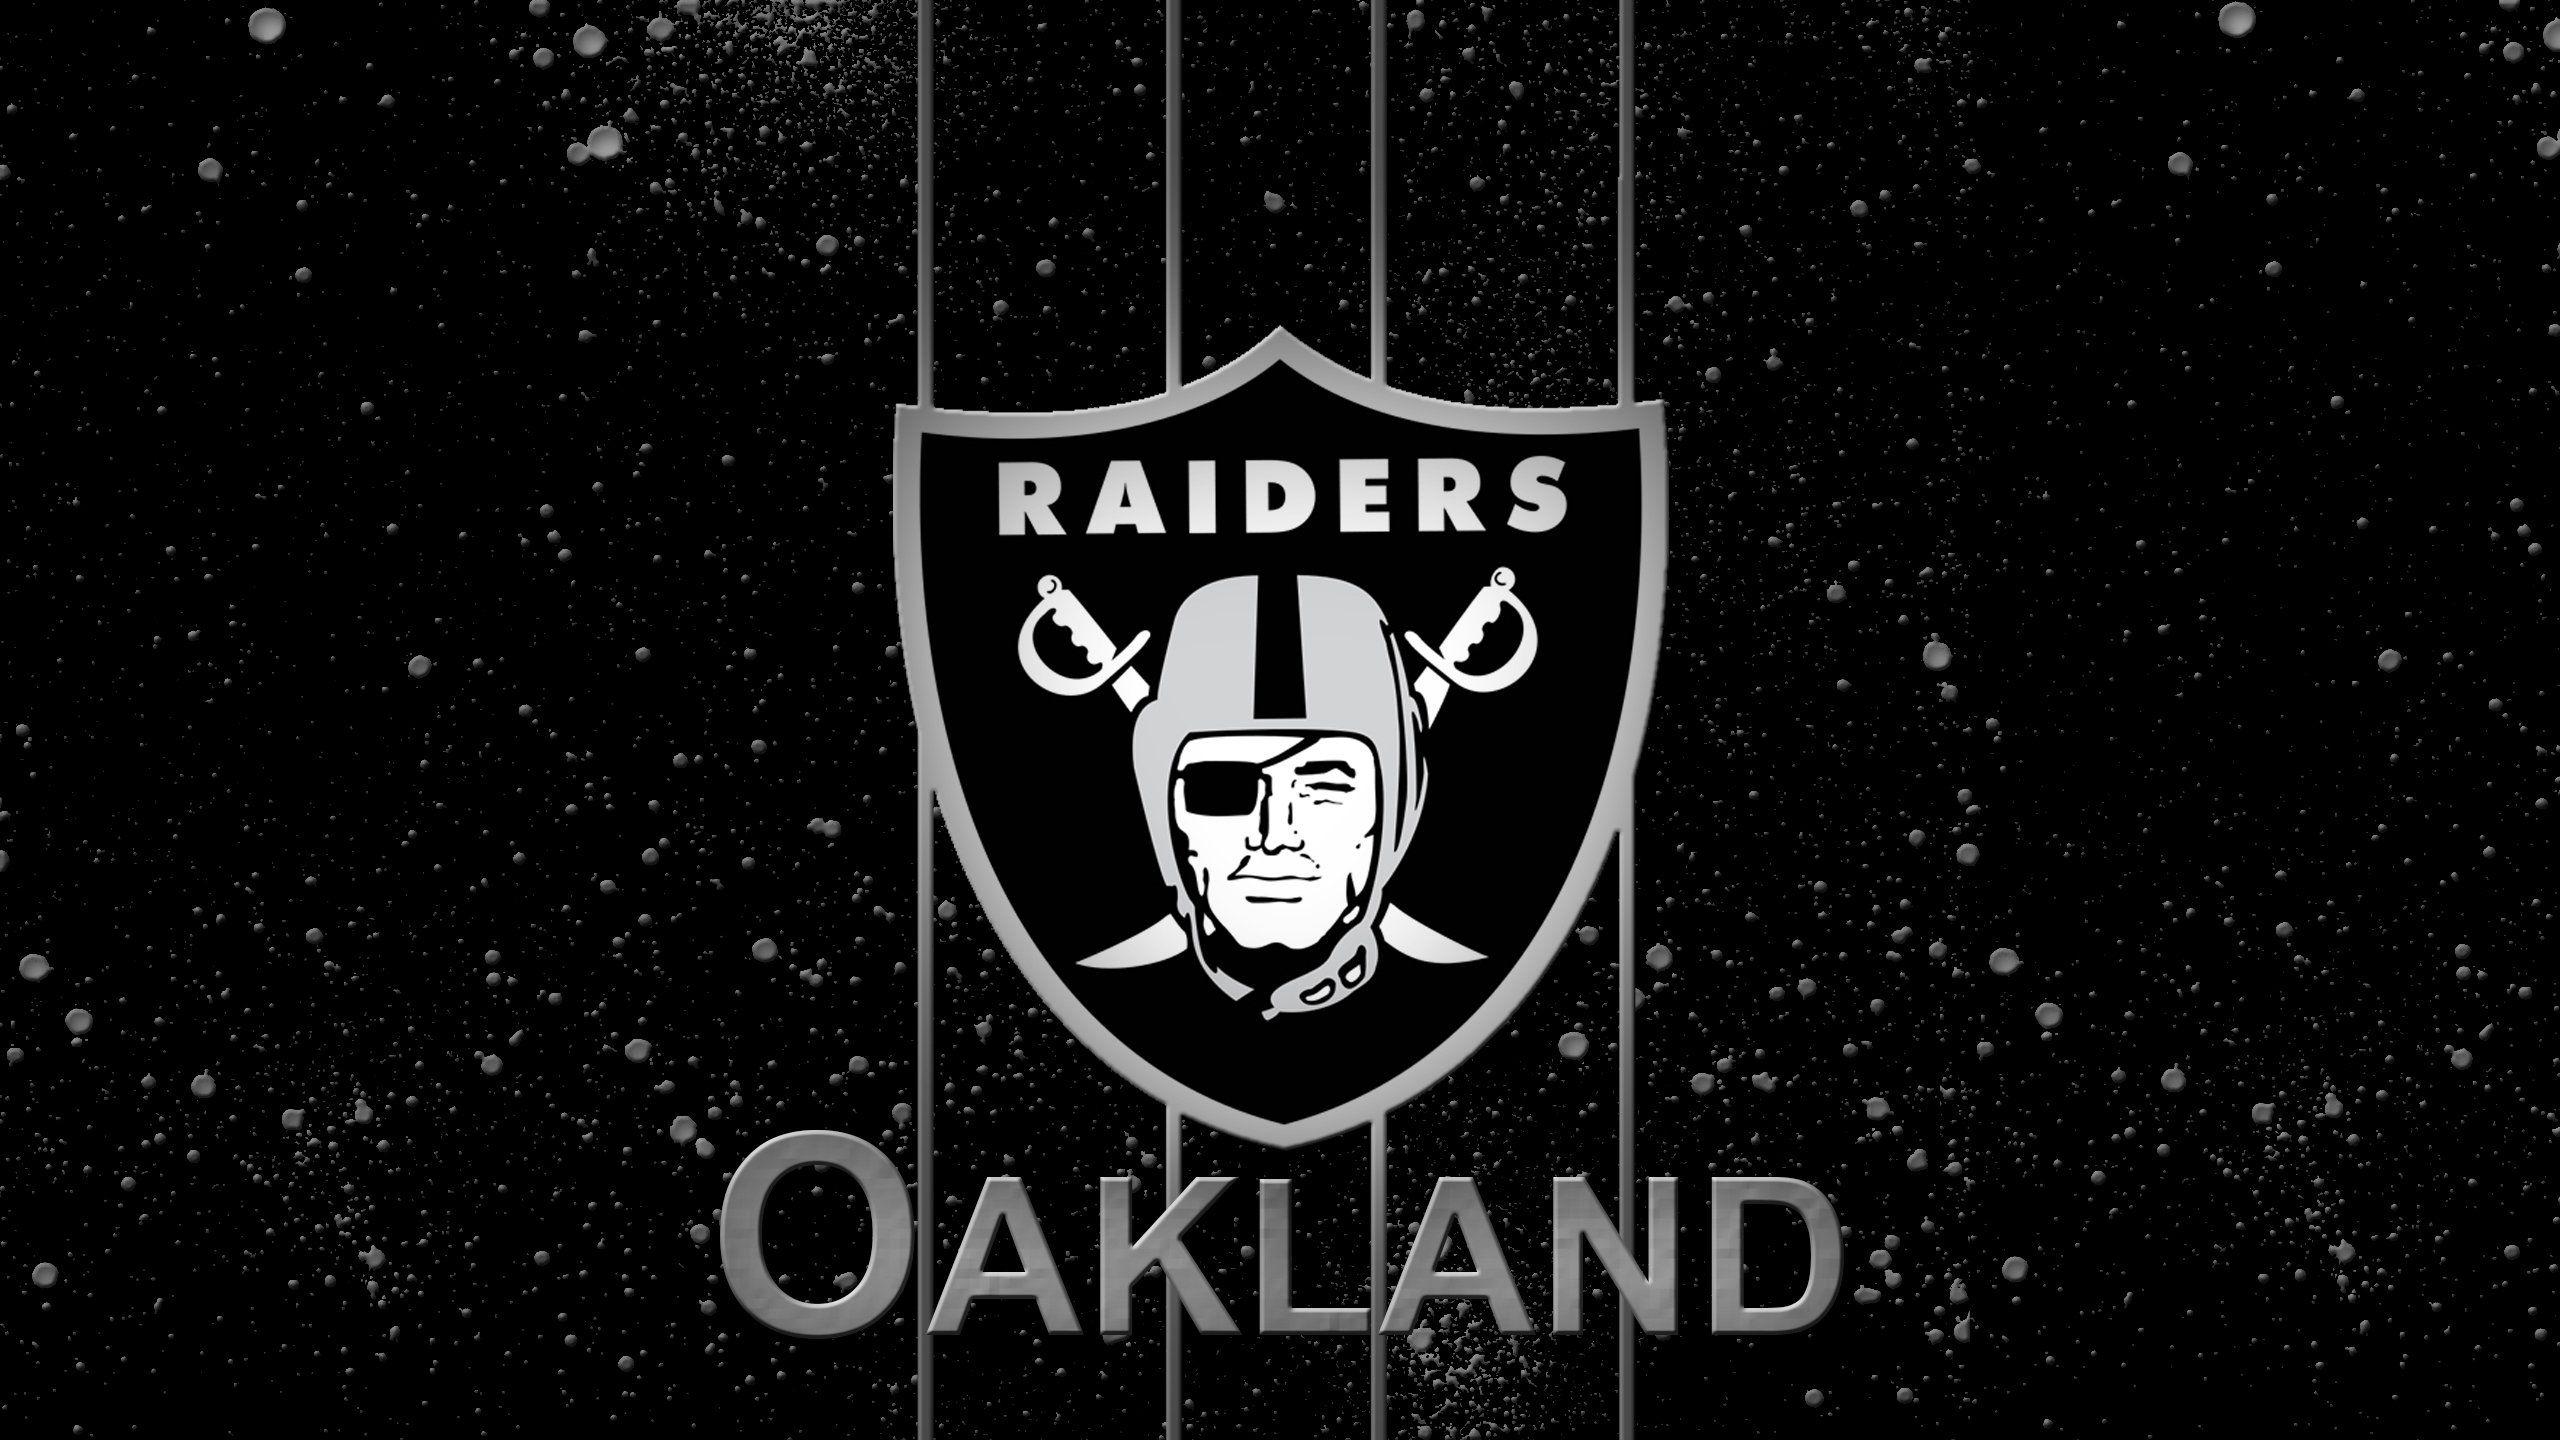 Oakland Raiders Wallpapers 2560x1440